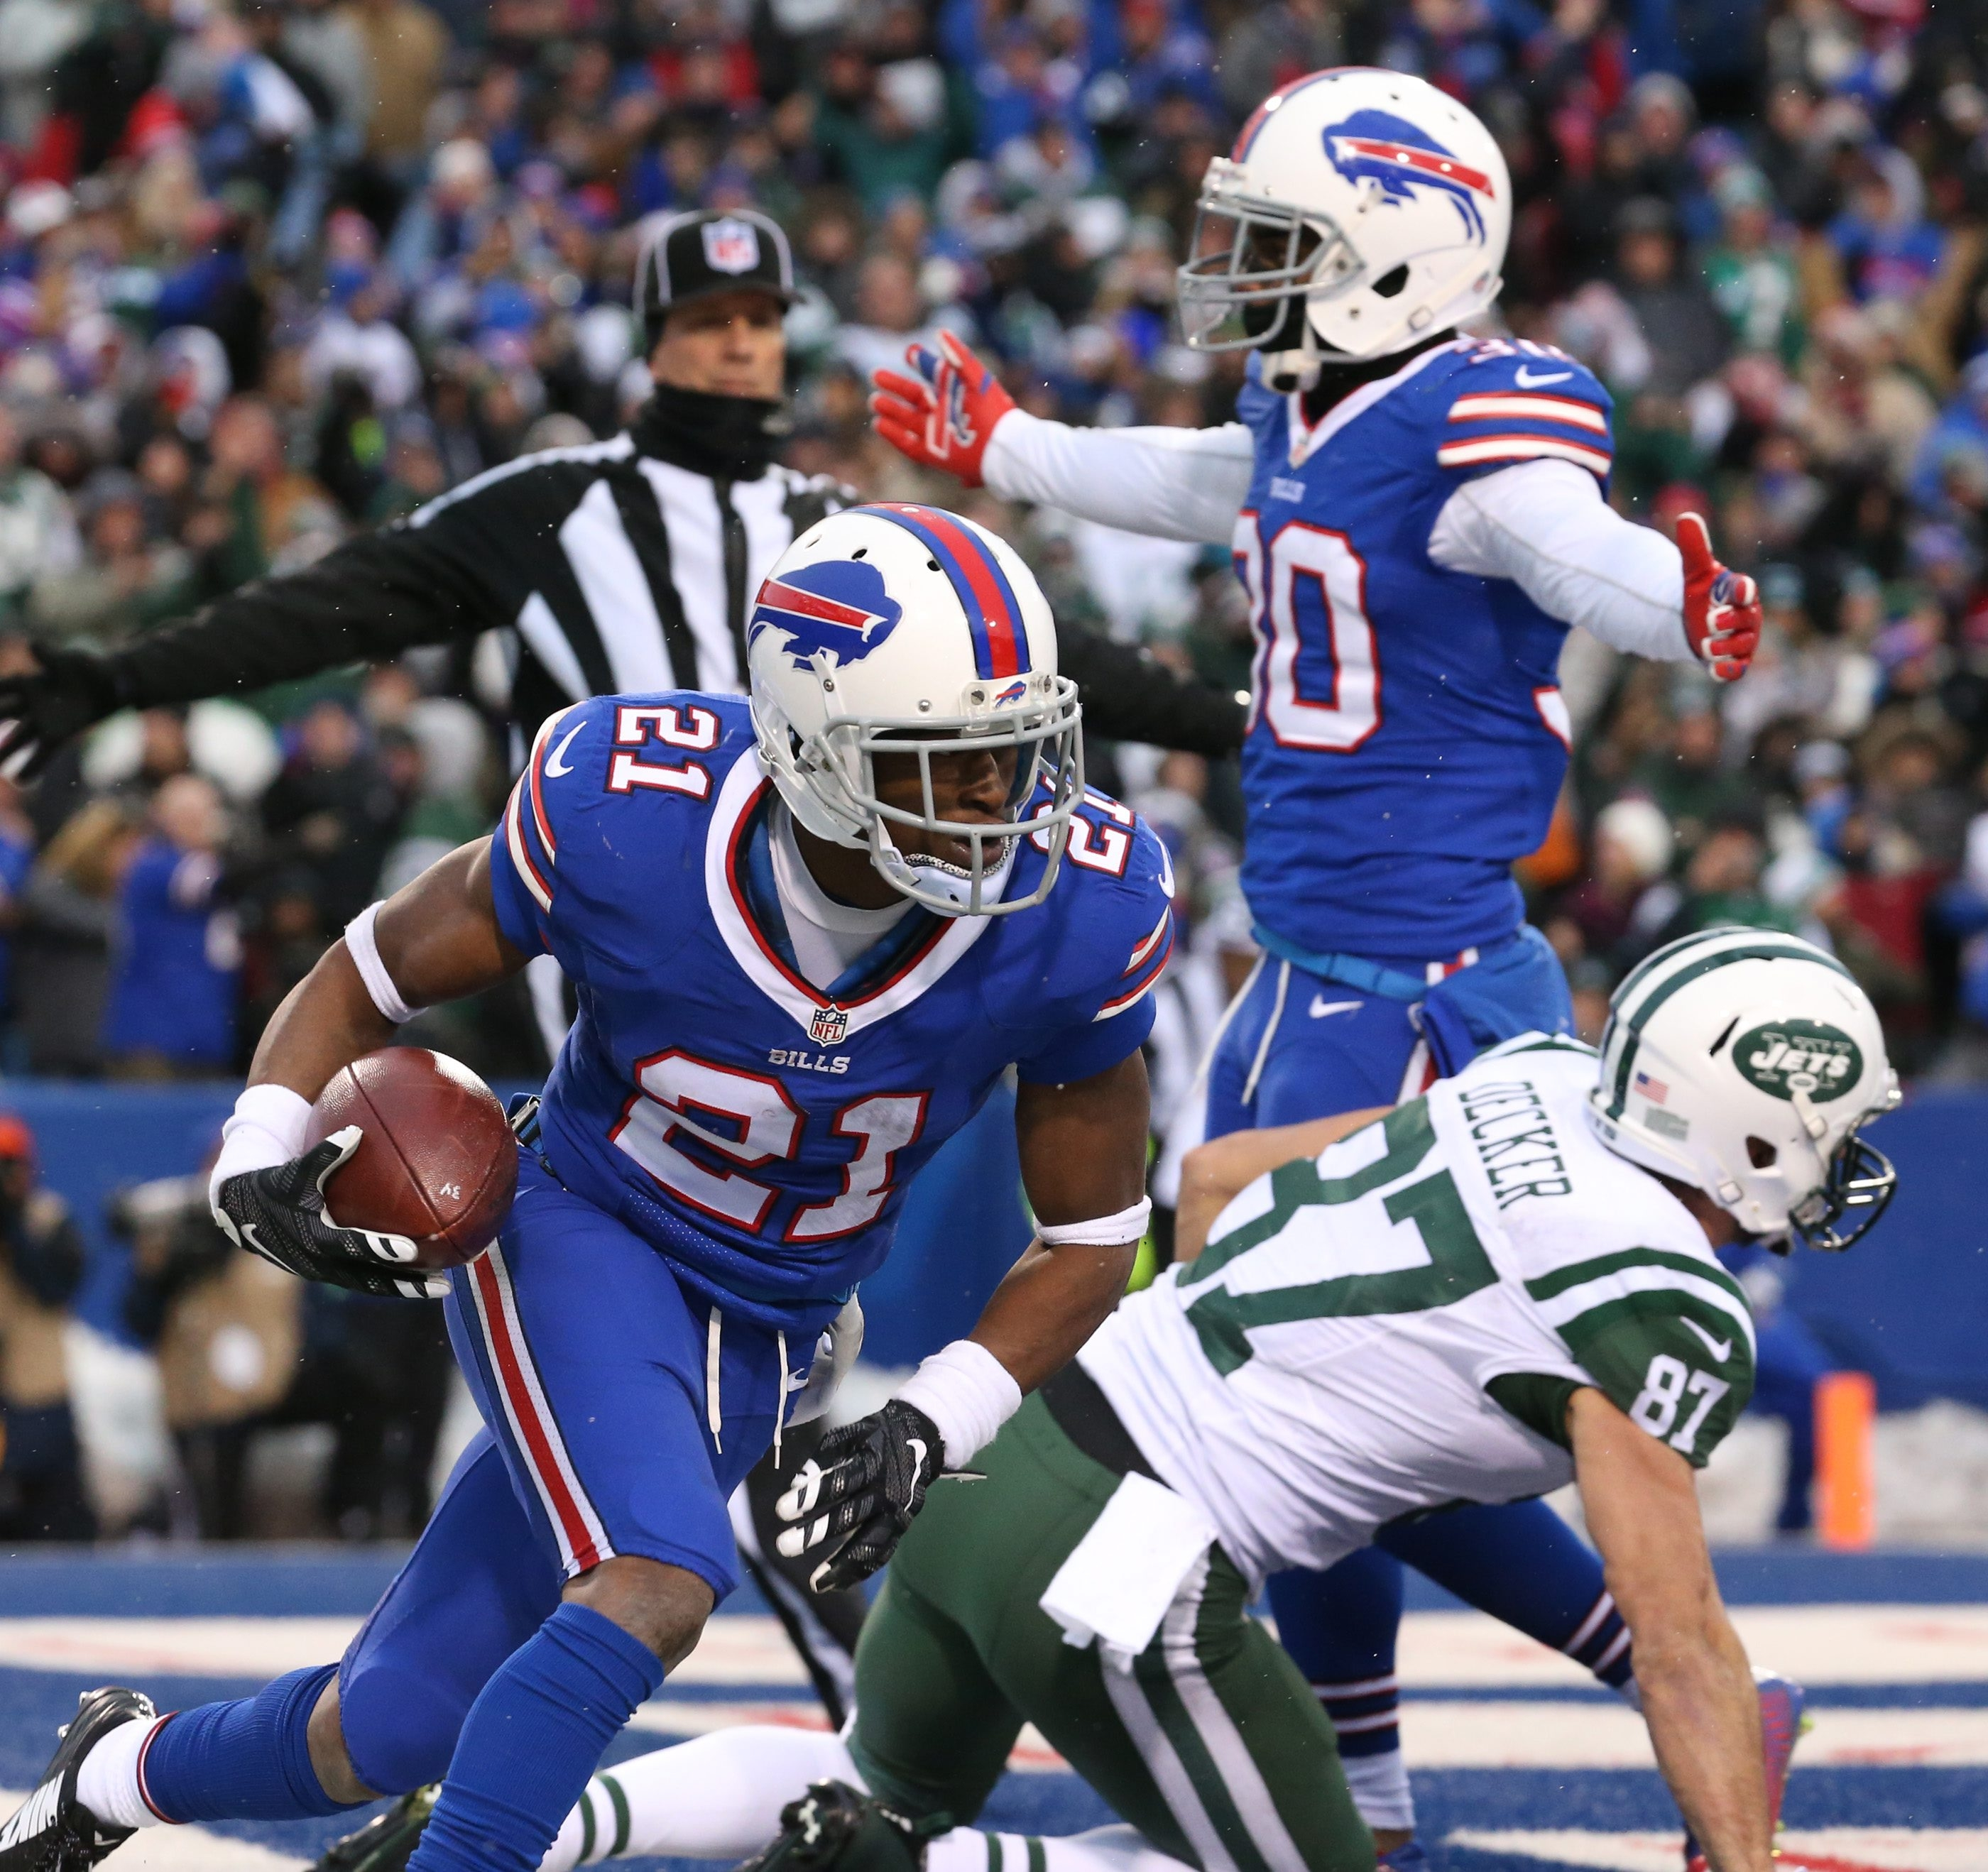 Buffalo Bills strong safety Leodis McKelvin (21) intercepts the ball in the end zone in the fourth quarter at Ralph Wilson Stadium in Orchard Park, NY on Sunday, Jan. 3, 2016.  ()